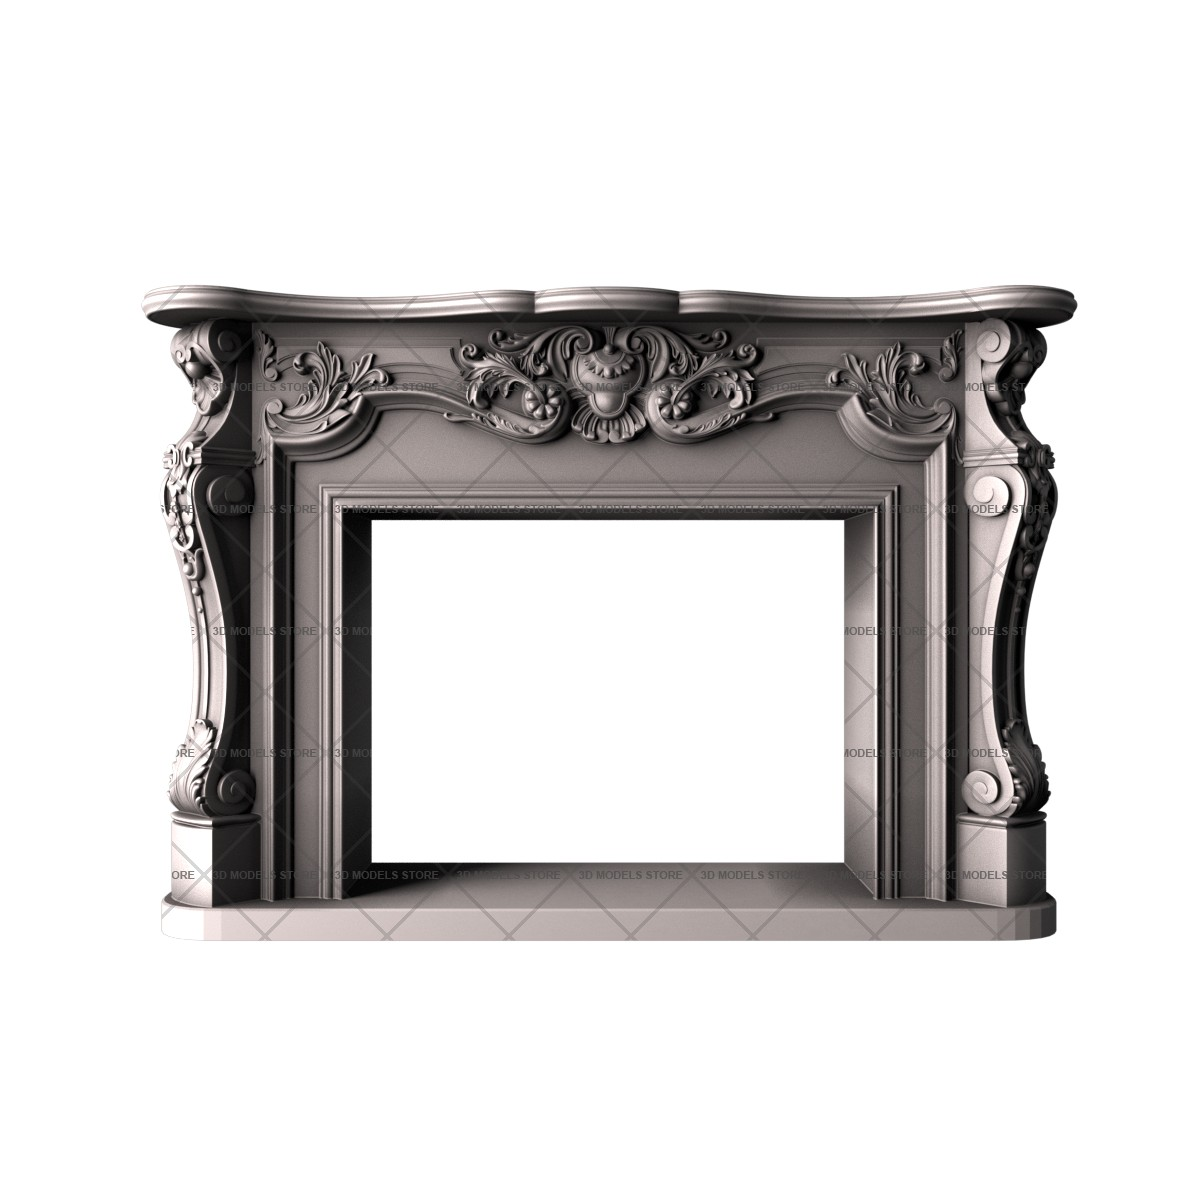 Fireplace, 3d models (stl)